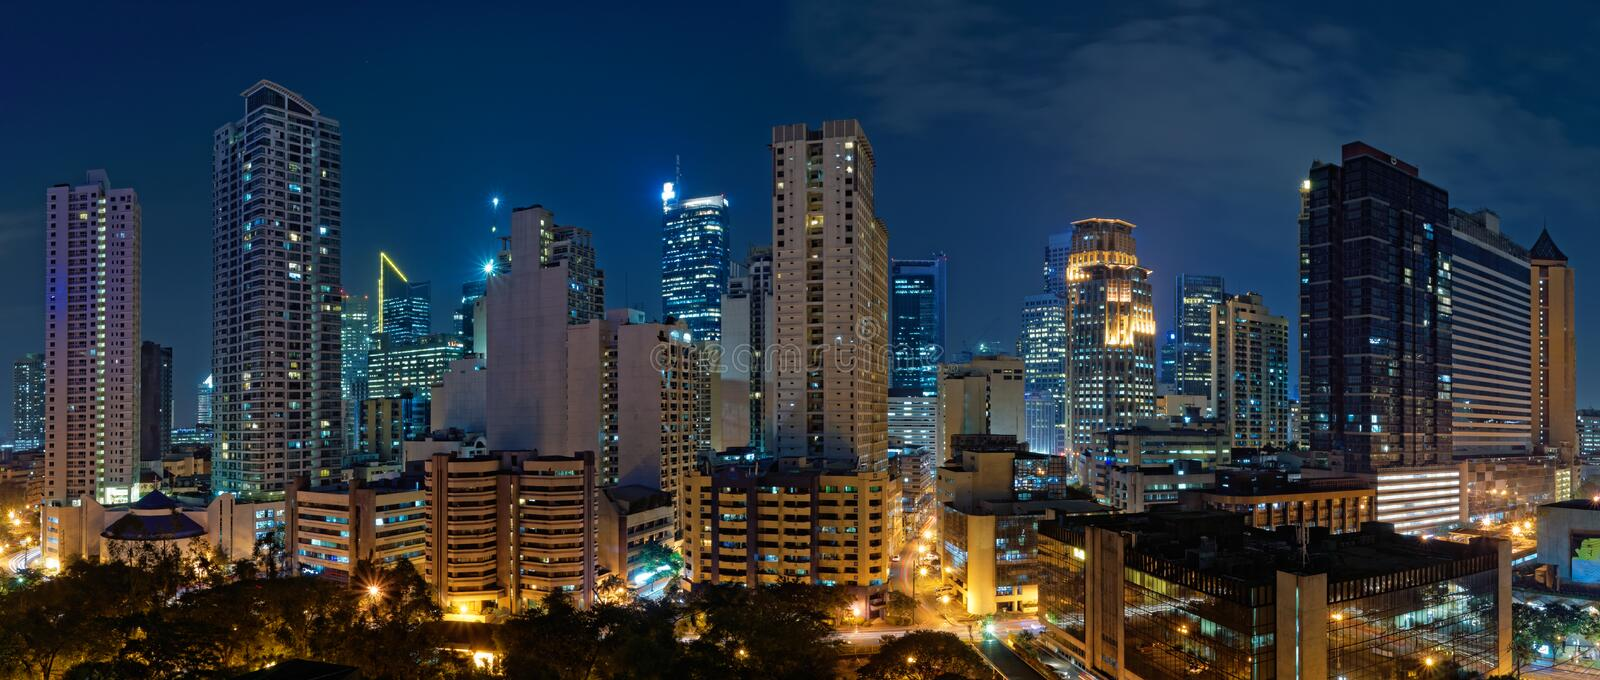 Makati, Manila (Philippines) at night royalty free stock images